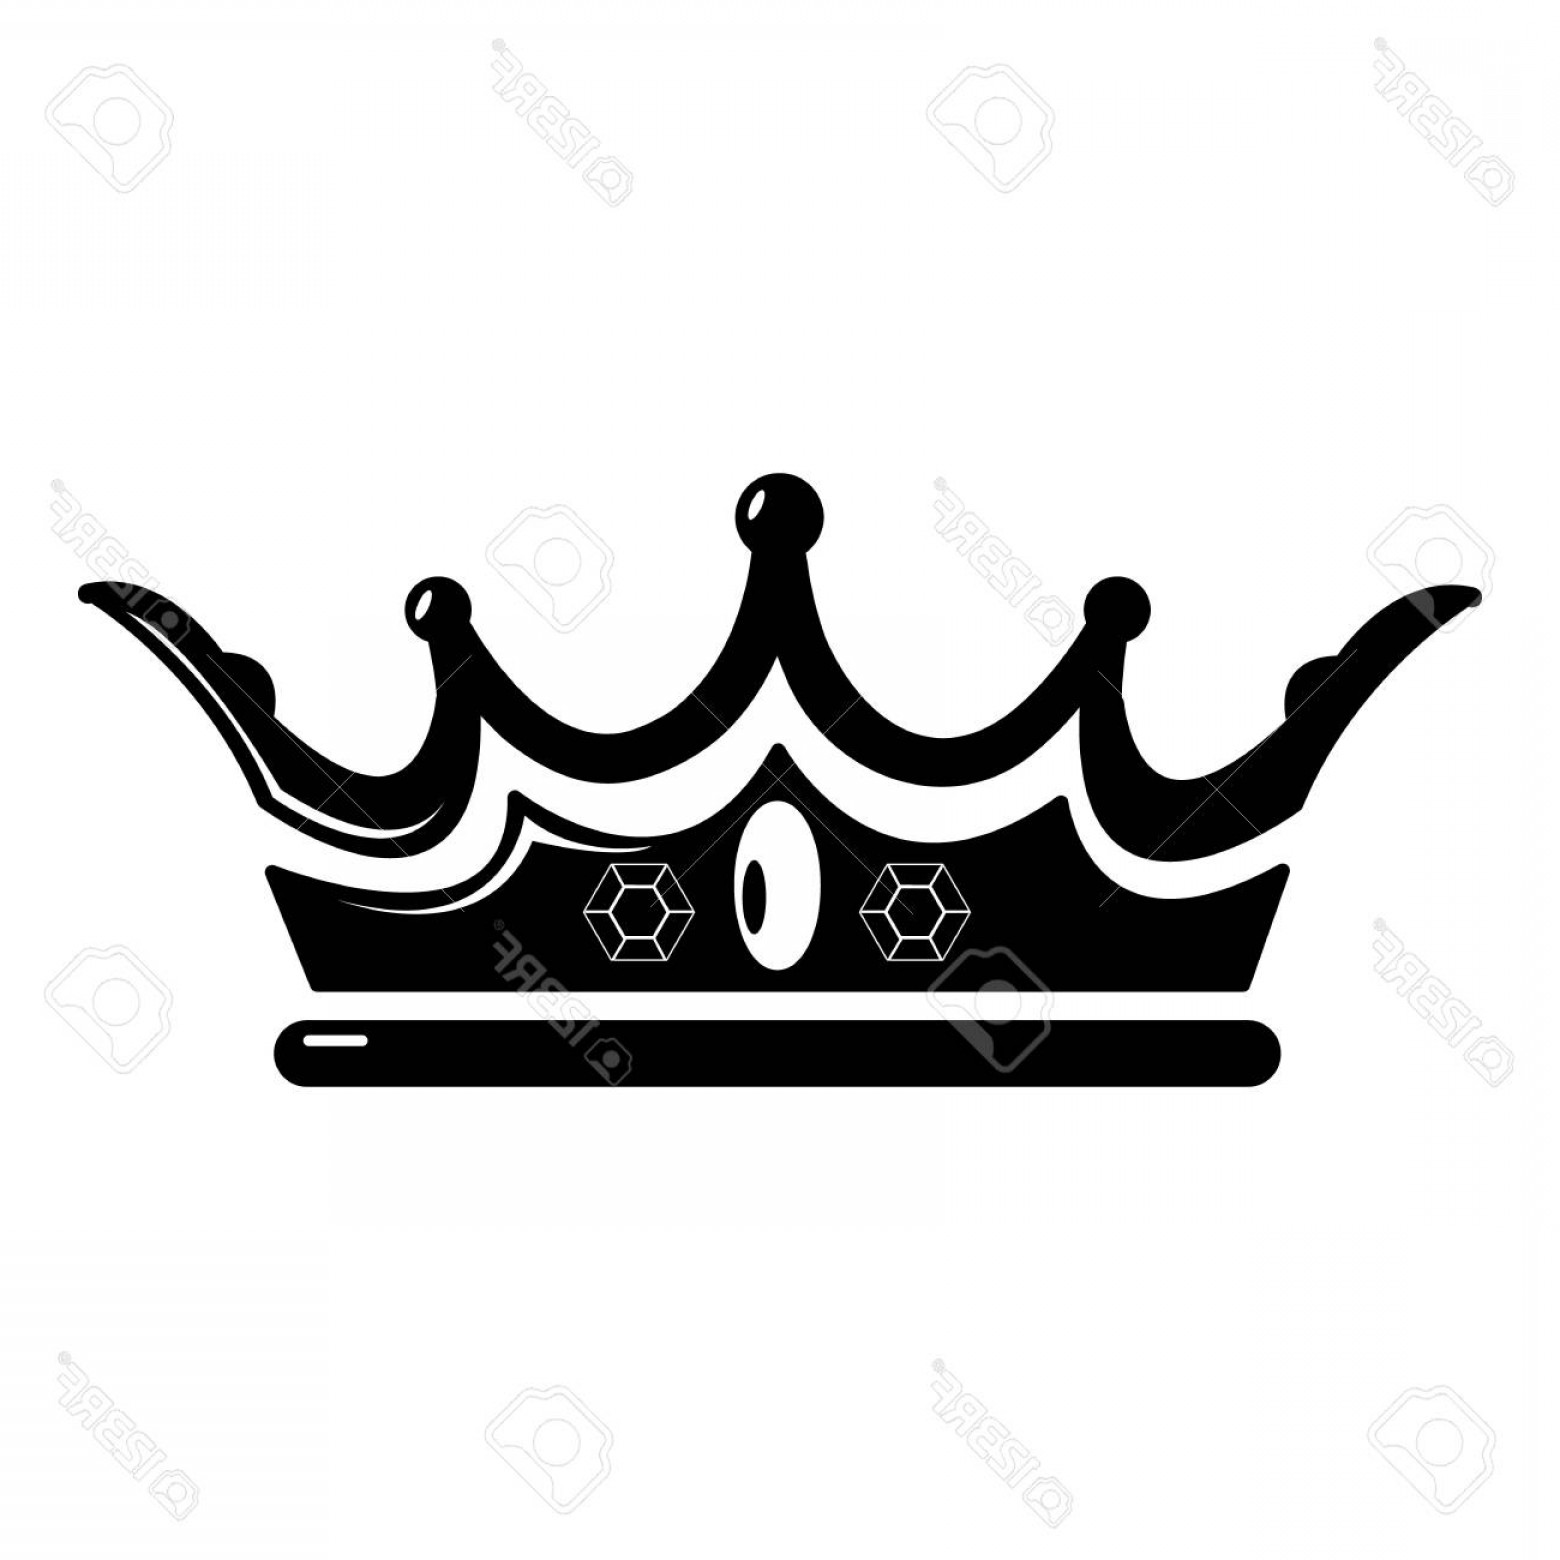 Crown Vector Clip Art: Photostock Vector Princess Crown Icon Simple Illustration Of Princess Crown Vector Icon For Web